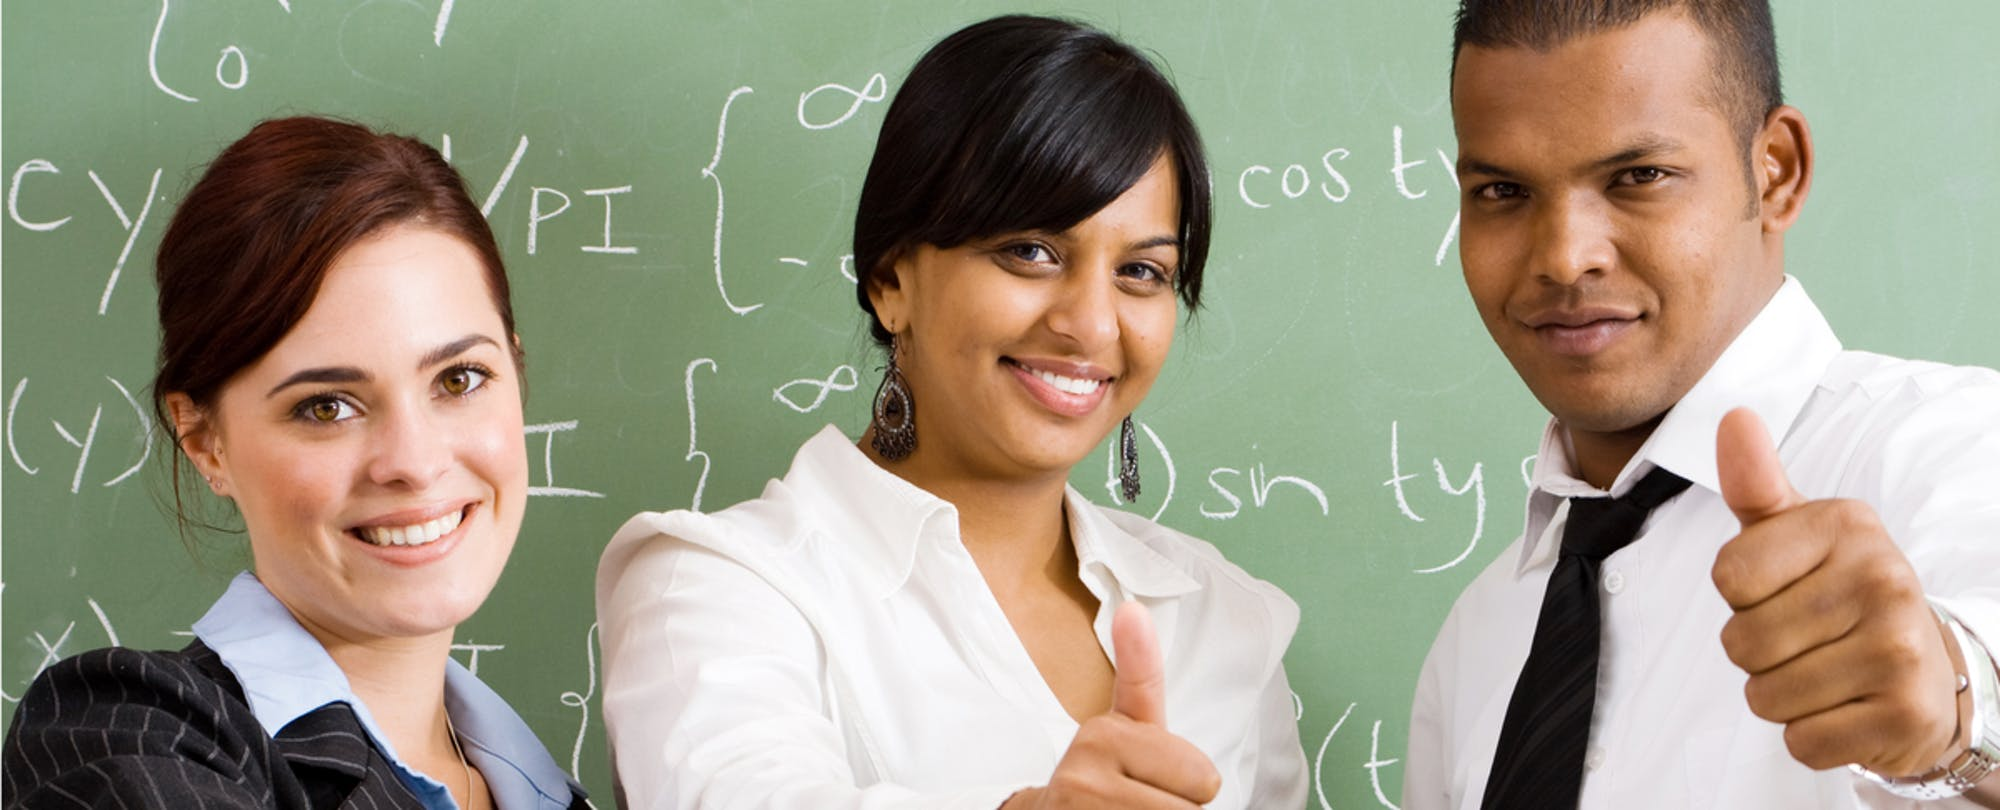 Math Teachers Need Better Professional Development. Here's a Personalized Approach.